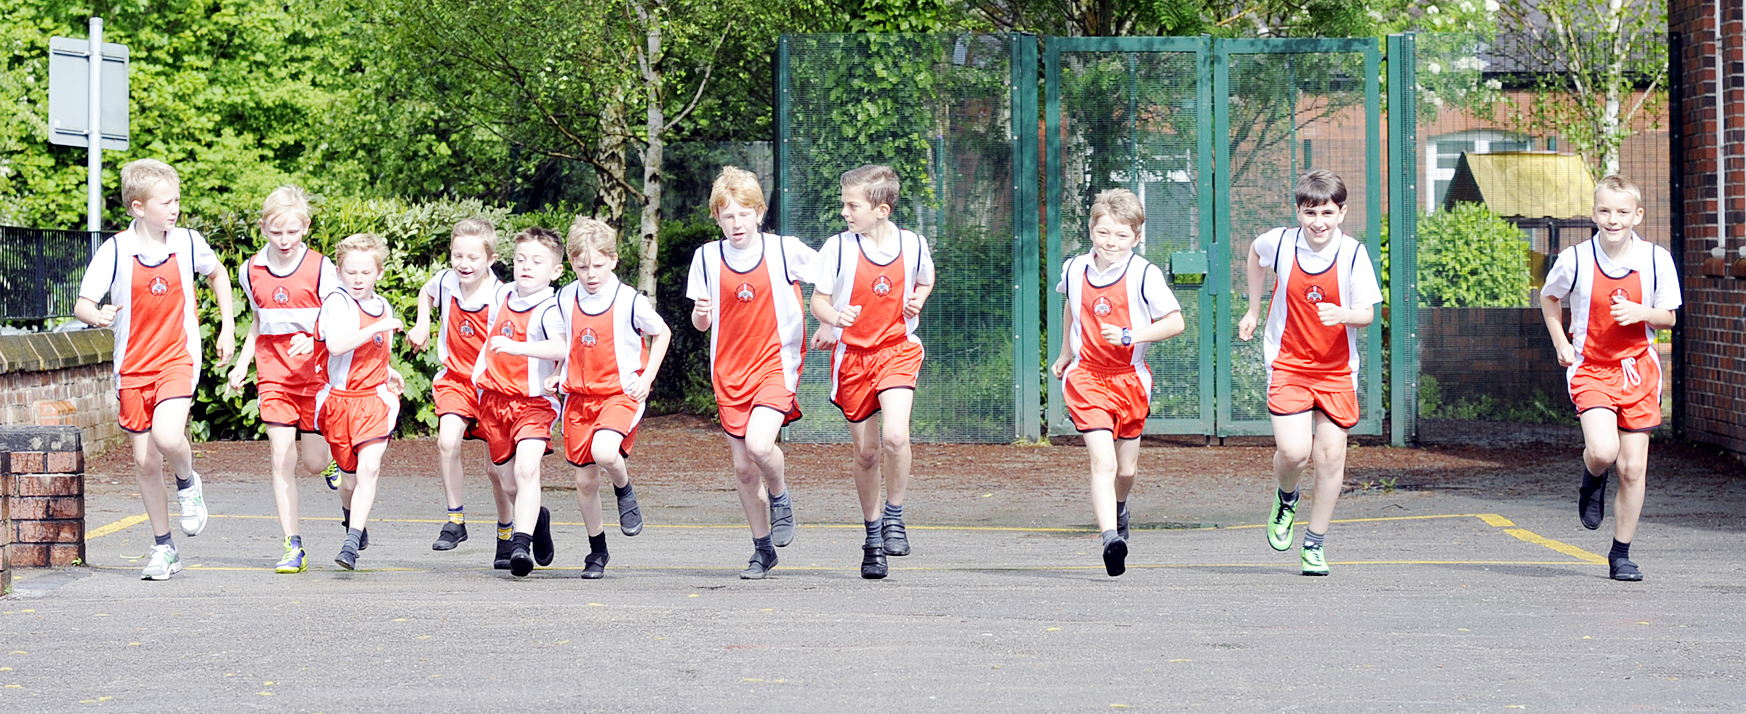 St Saviour's School cross country team put the